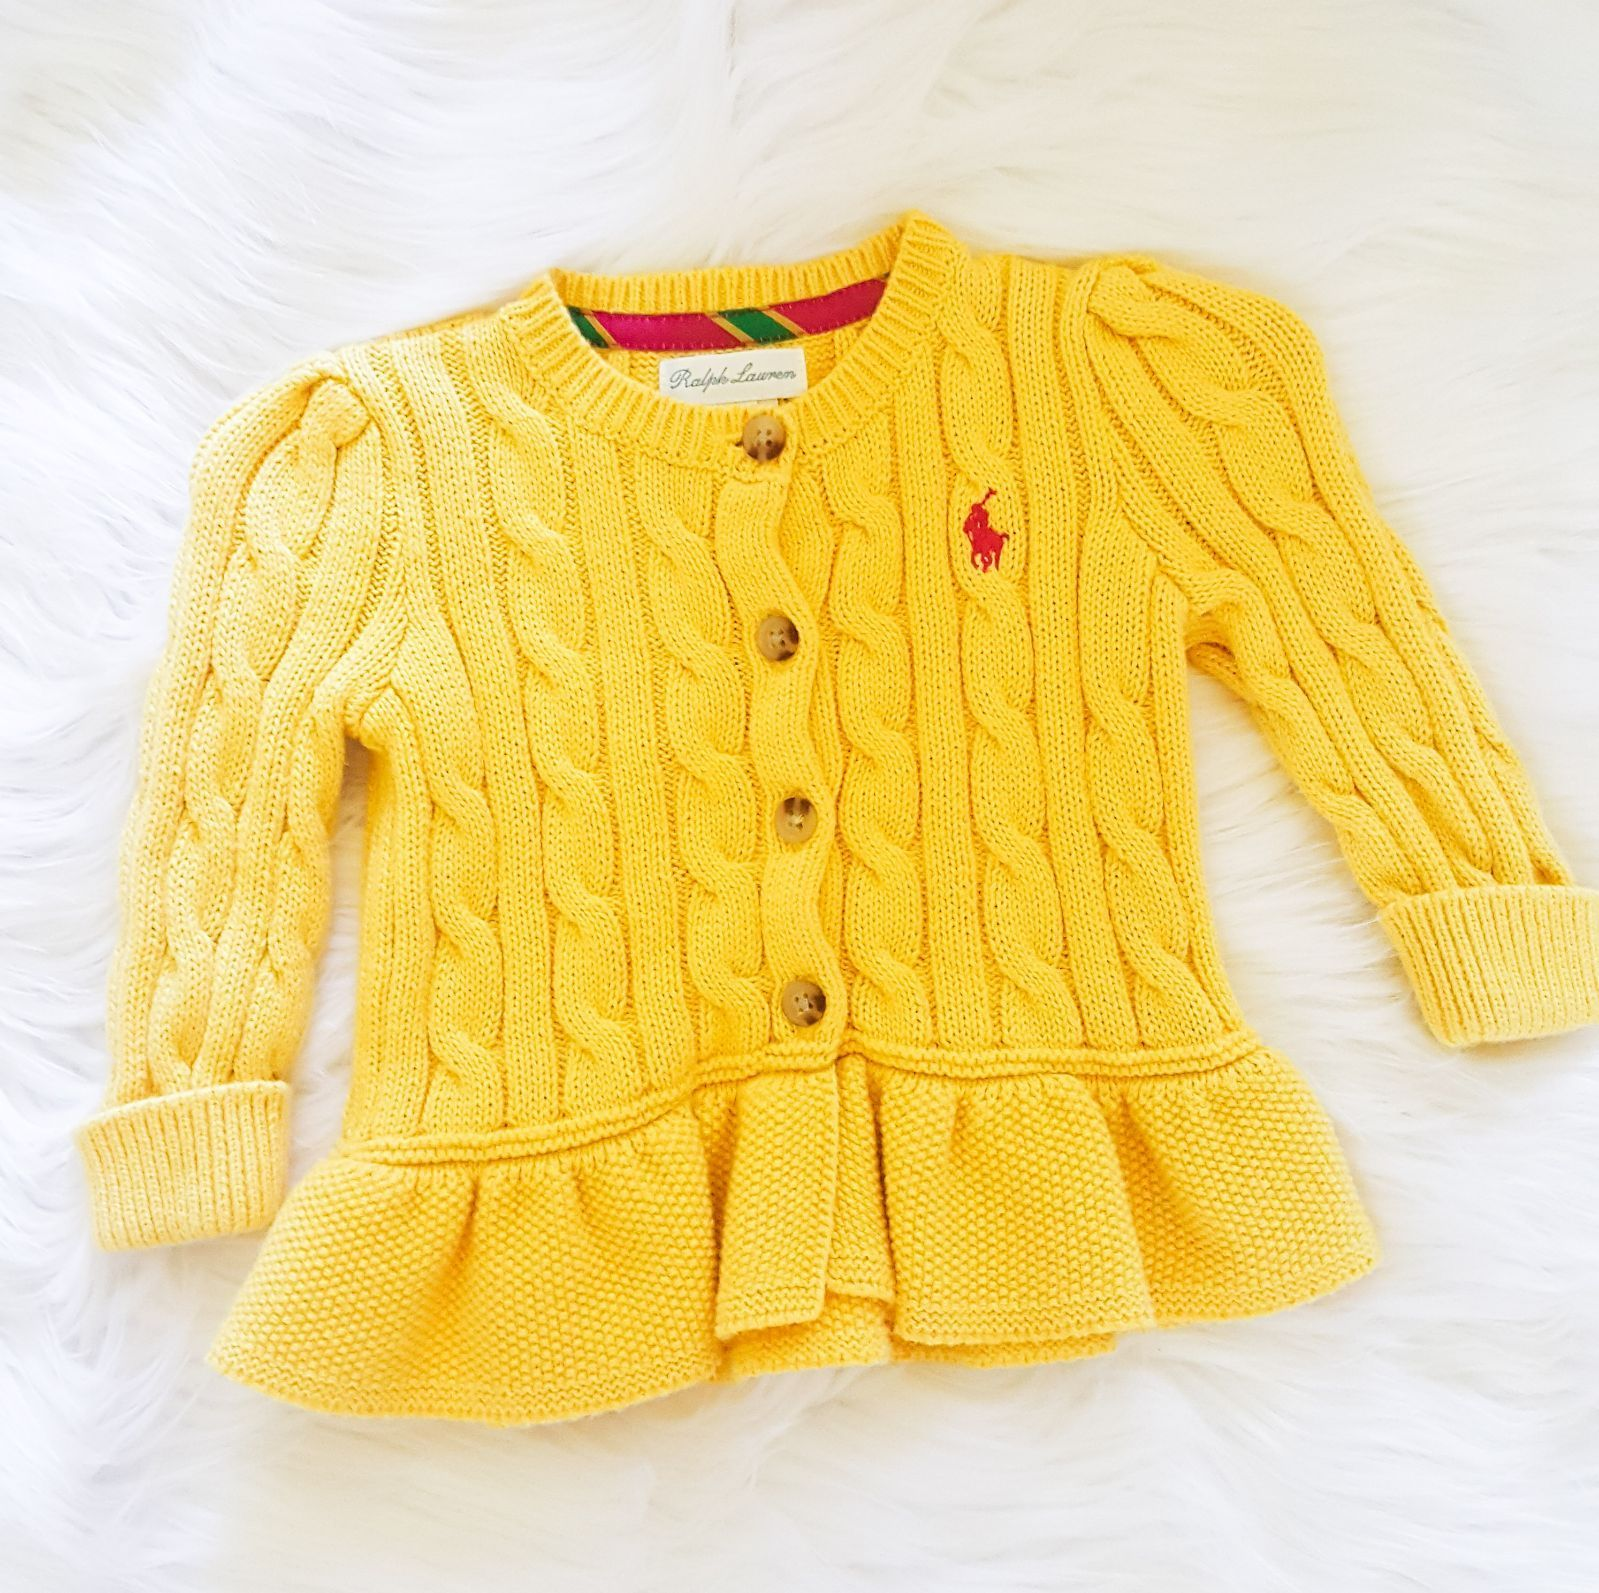 Ralph Lauren Yellow Knit Sweater - Mercari: BUY & SELL THINGS YOU LOVE